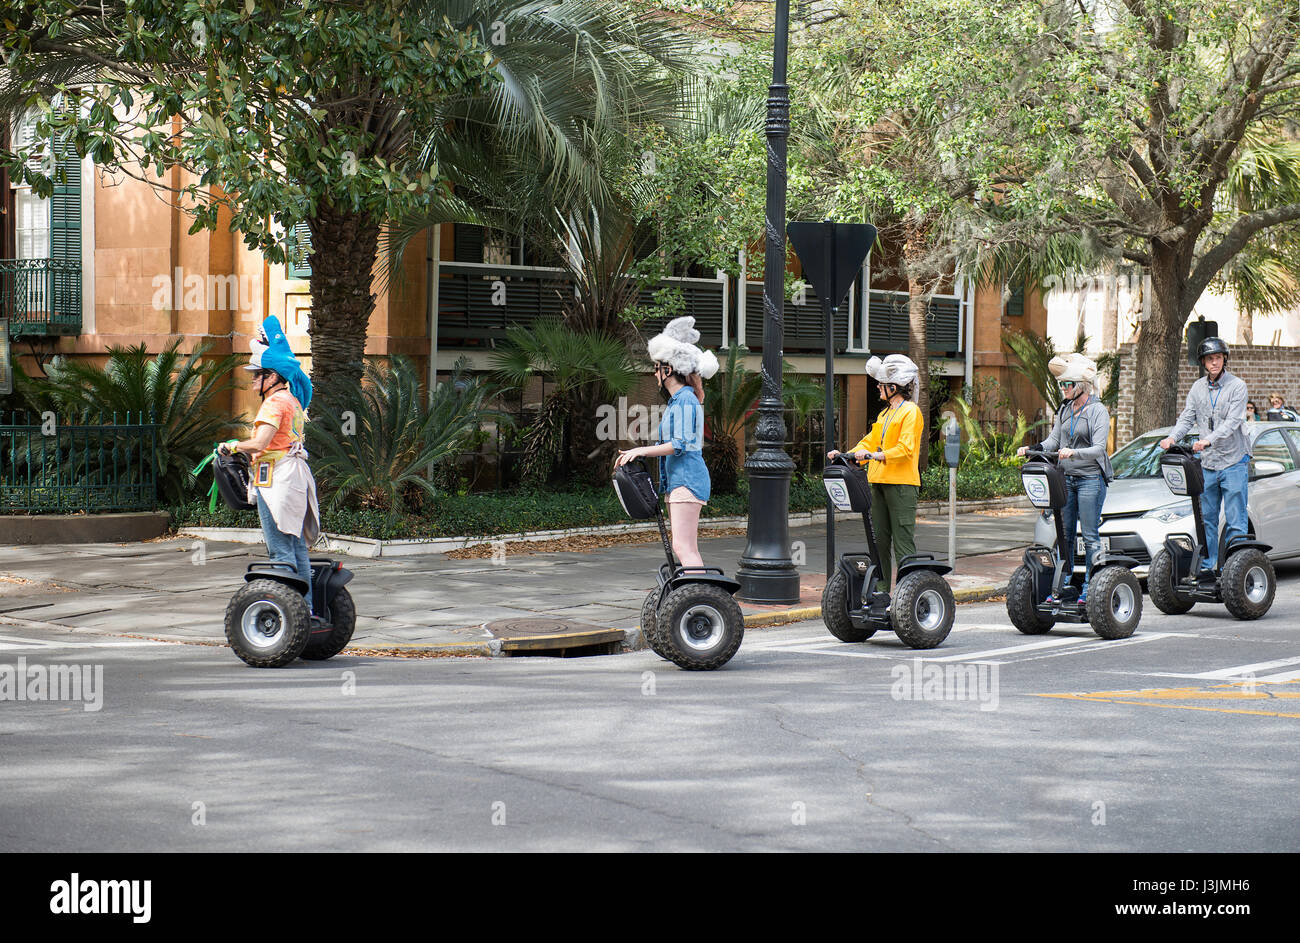 Adventure Tours in Motion, Segway tour in Savannah, Georgia - Stock Image